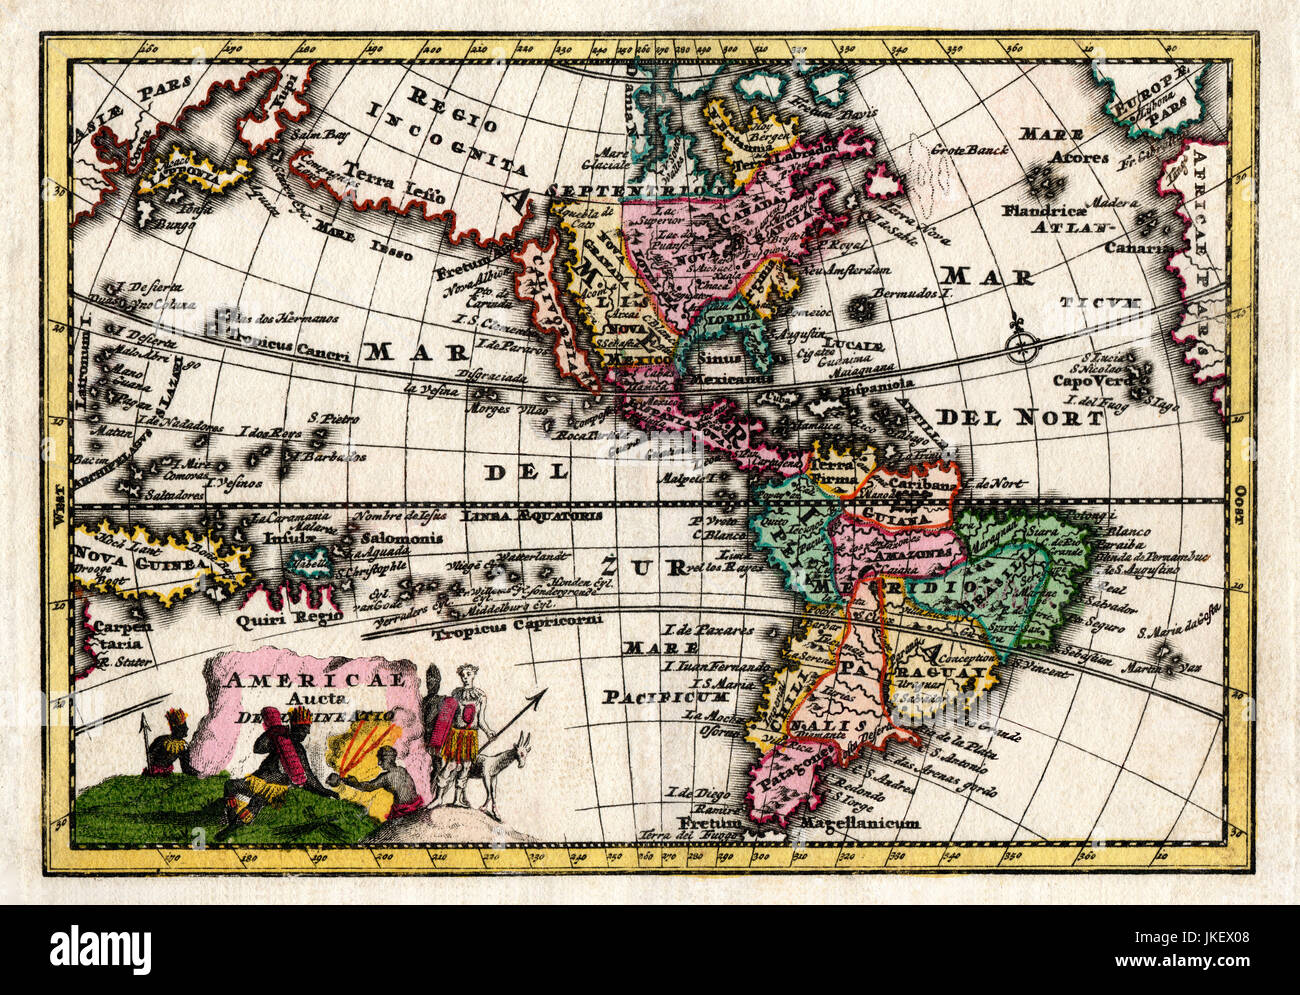 1730 Wiegel Map Of The Americas Showing California As An